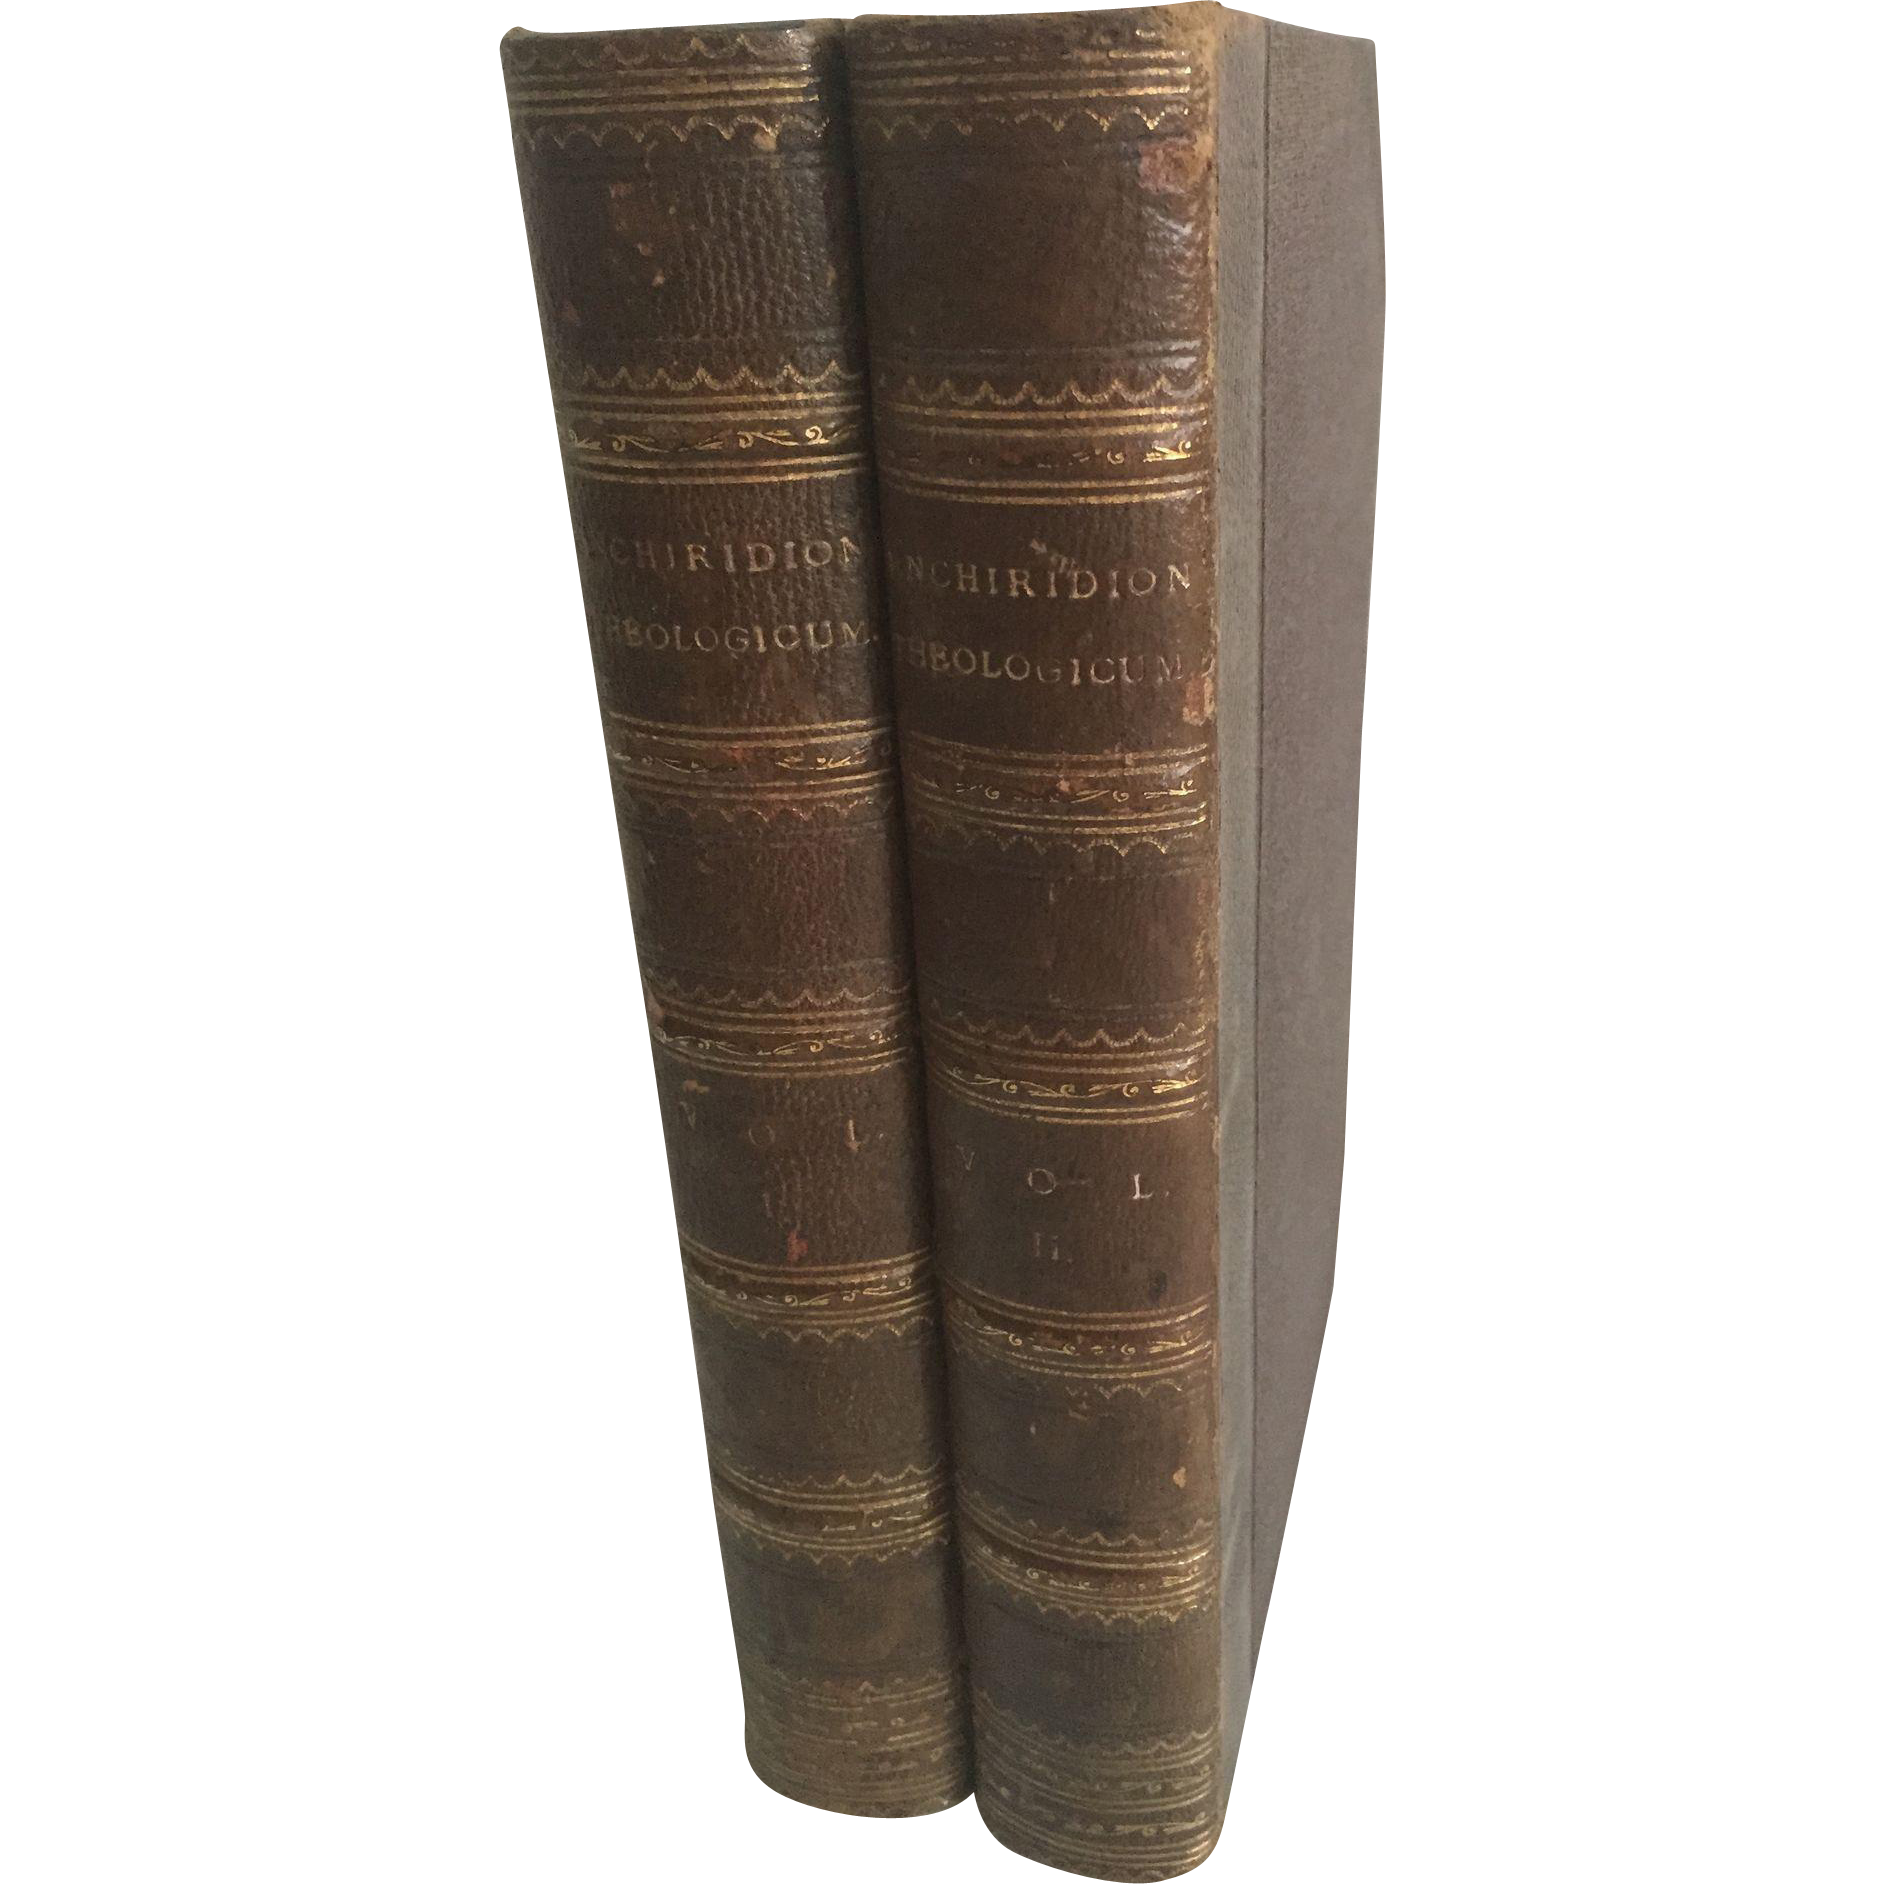 Enchiridion Theologicum, A Manual, for the use of Students in Divinity, by John Randolph, Lord Bishop of London, 1825